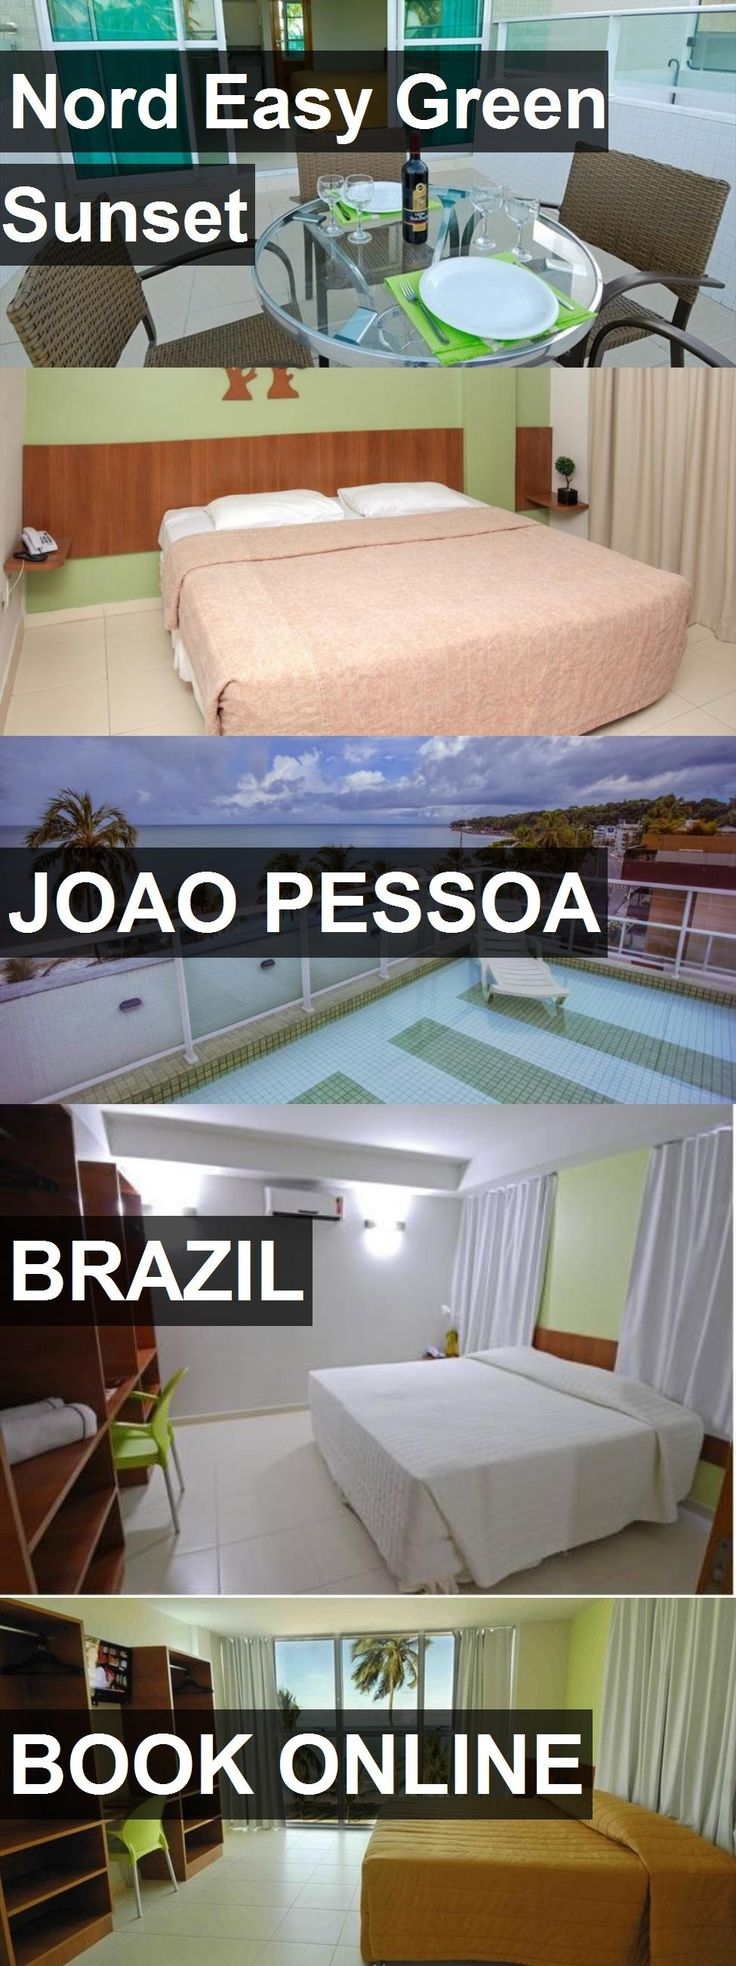 Hotel Nord Easy Green Sunset in Joao Pessoa, Brazil. For more information, photos, reviews and best prices please follow the link. #Brazil #JoaoPessoa #NordEasyGreenSunset #hotel #travel #vacation